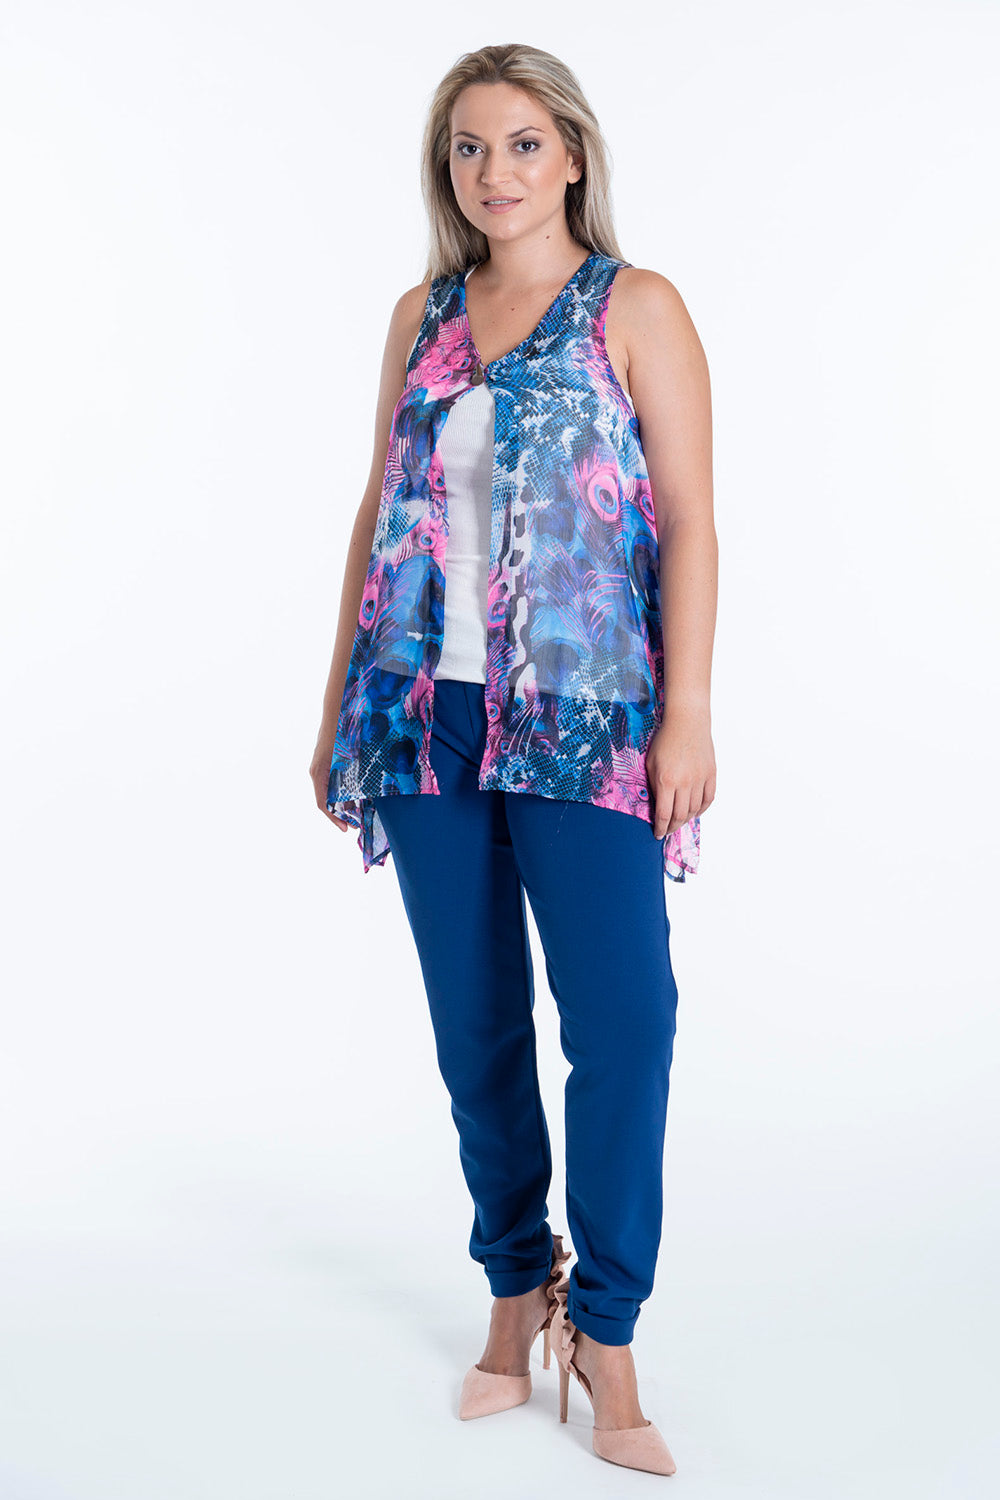 Ocean Blue by Marcia chiffon top in colourful feather design with one button